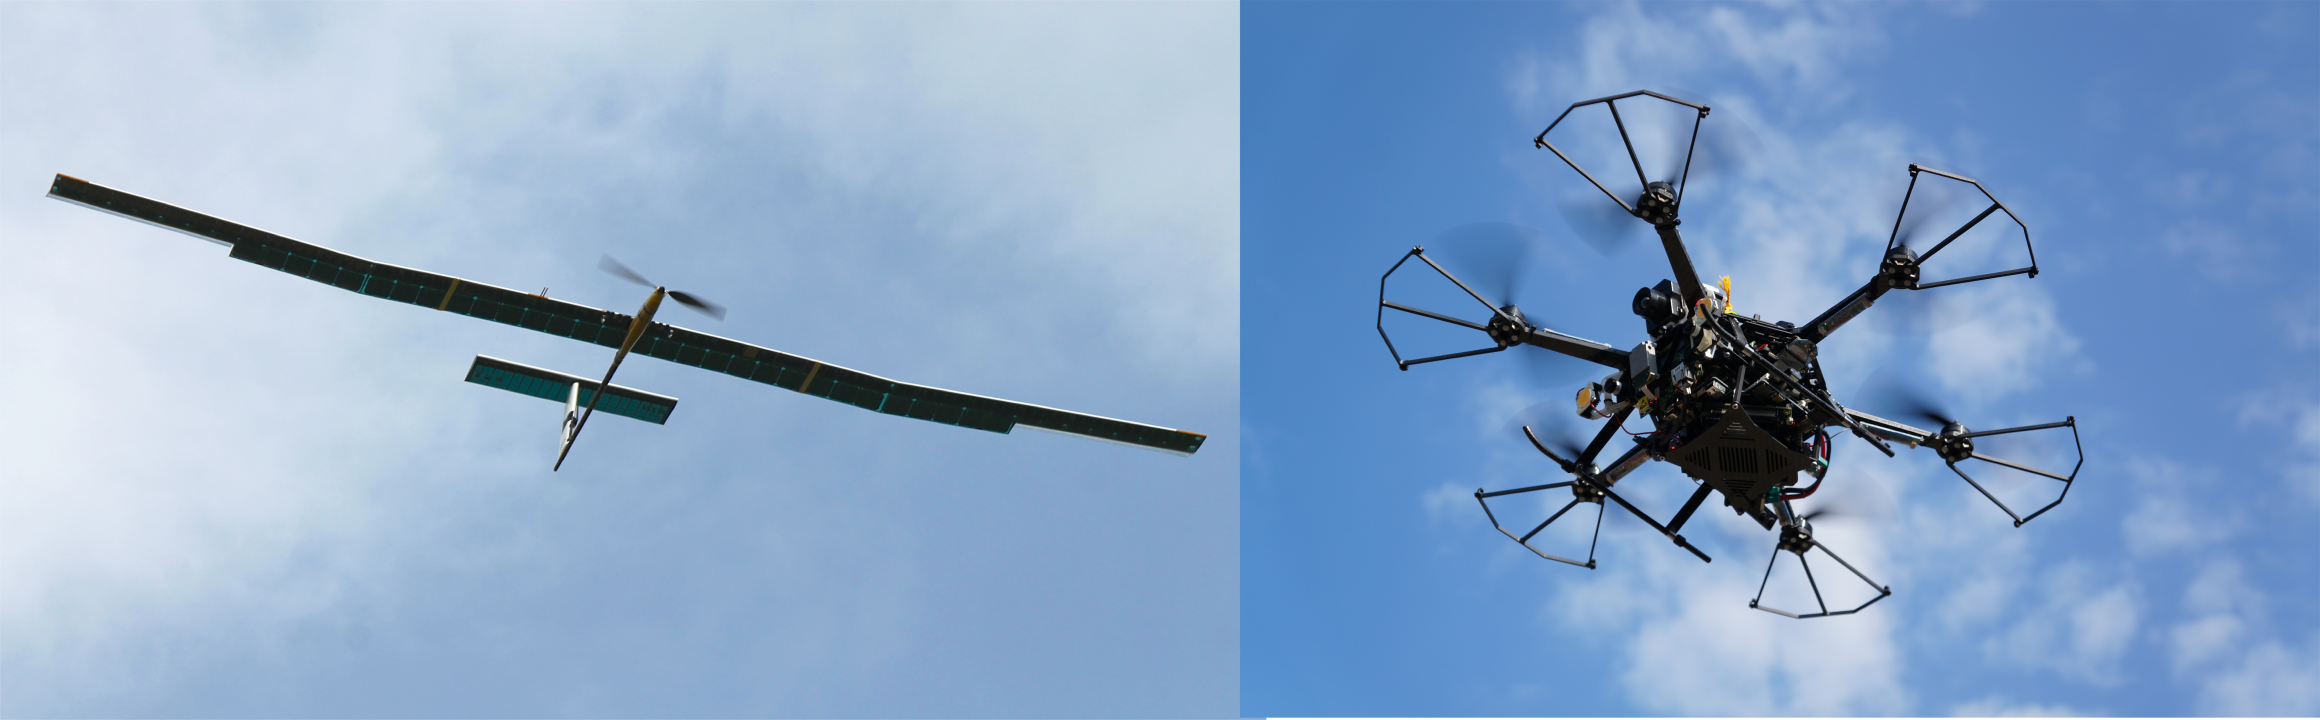 koptinspection:both_uavs_inspection.png